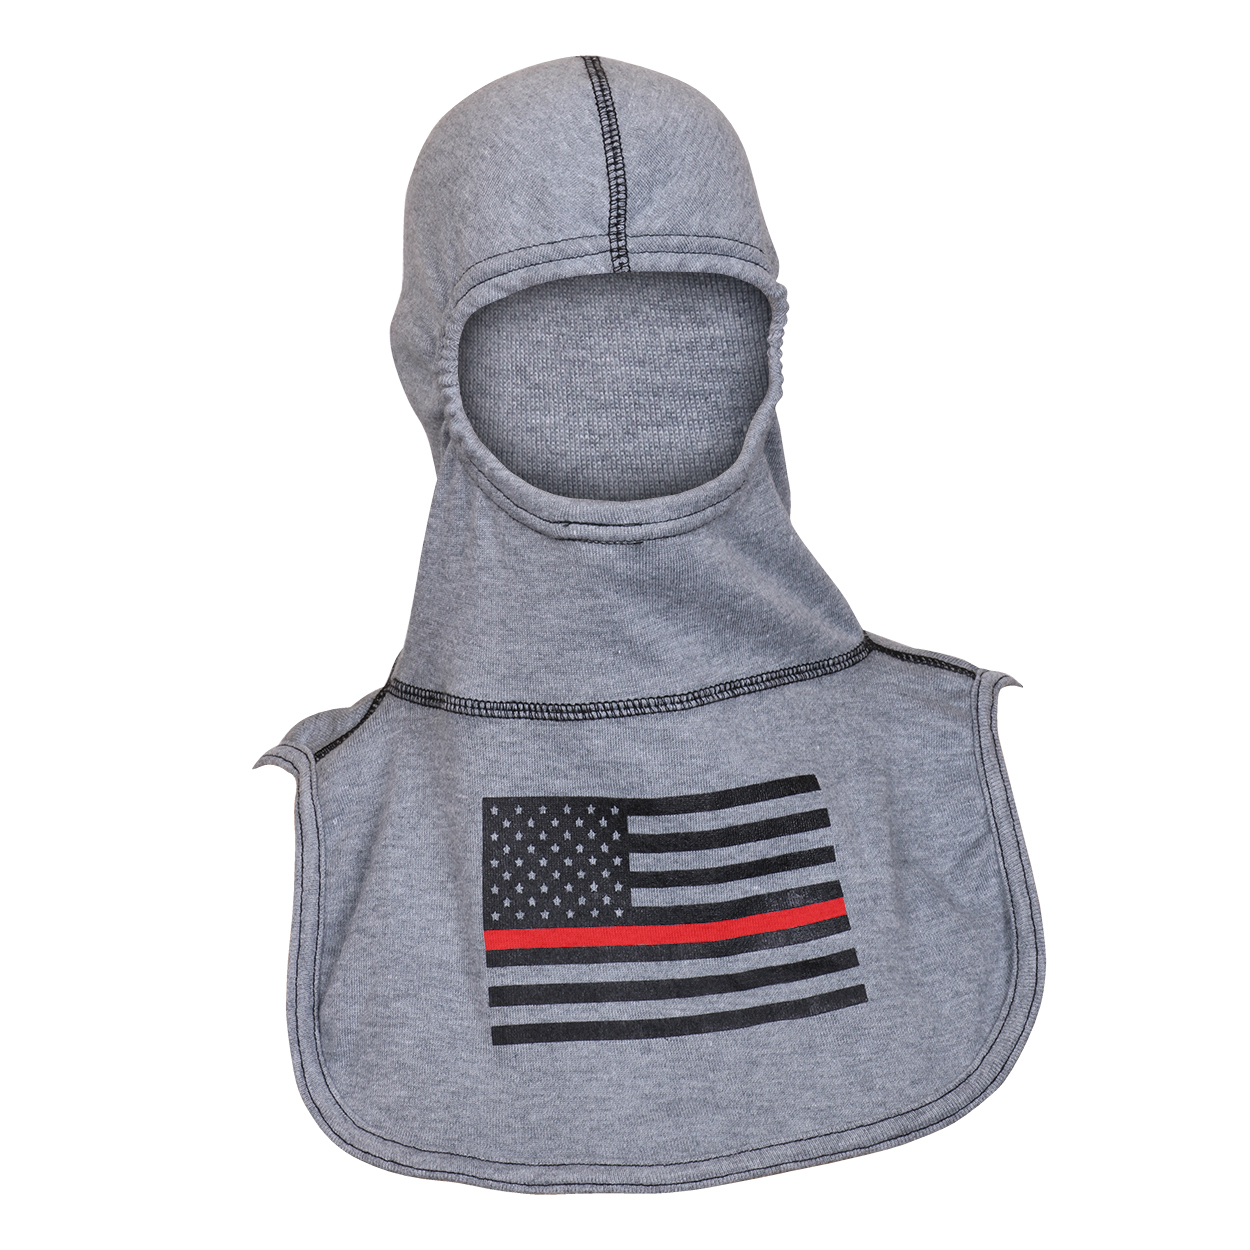 Majestic Fire Apparel Thin Red Line Firefighter Support Hood